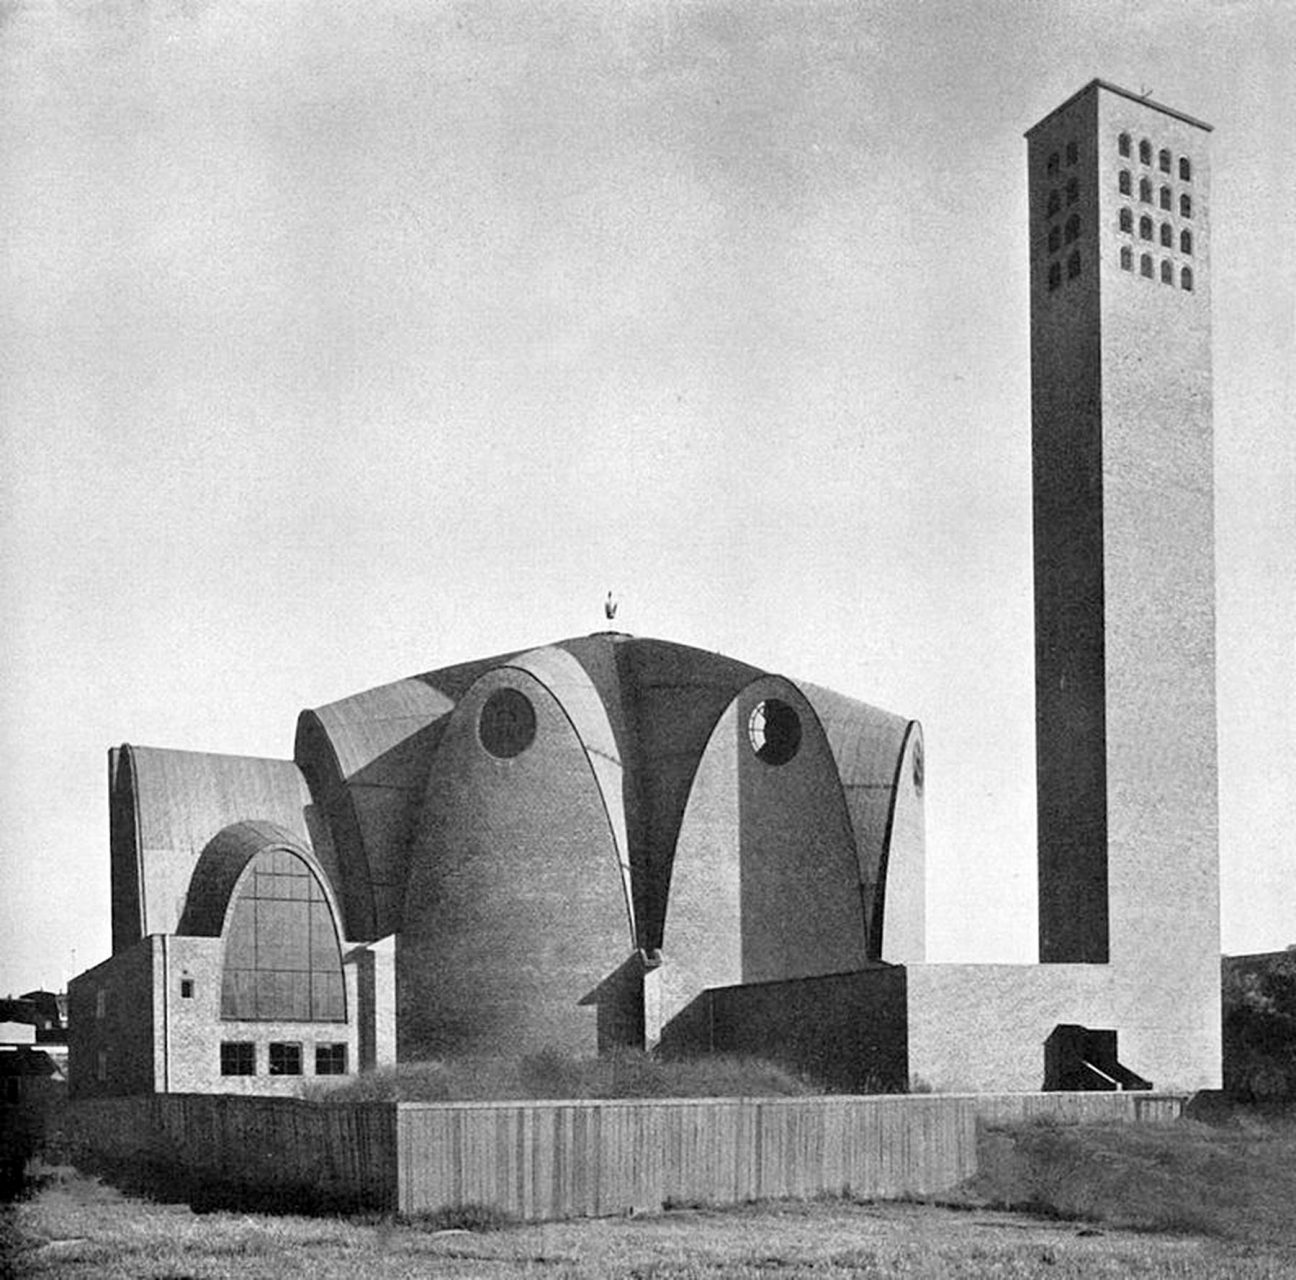 St. Engelbert.  The church in 1962